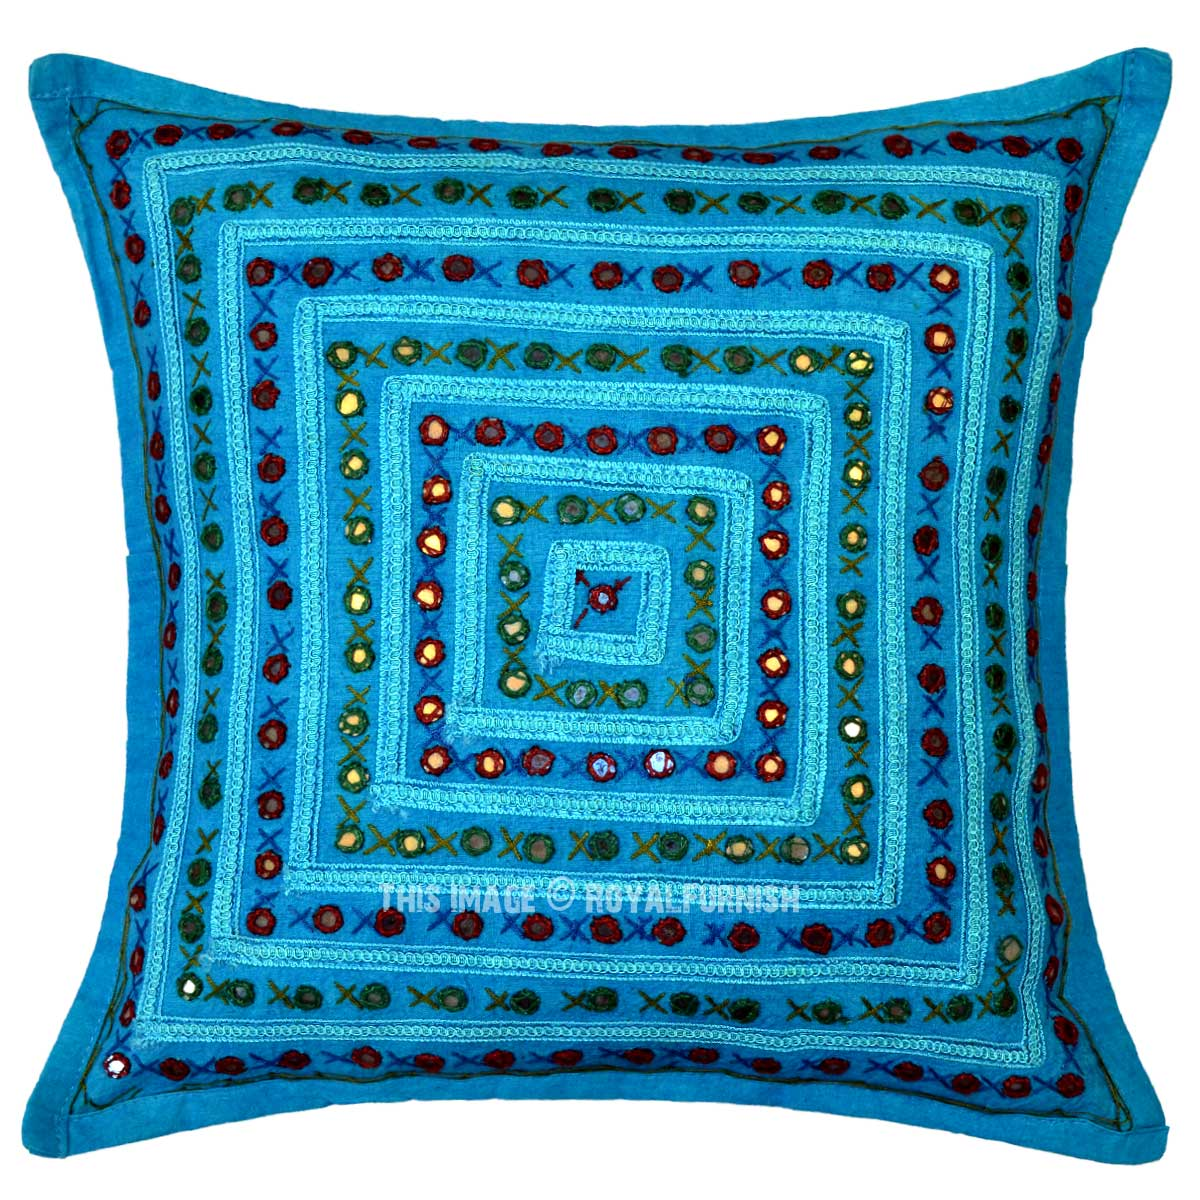 Small Square Decorative Pillows : Turquoise Blue Decorative Square Box Mirrored Embroidered Pillow Cover 16X16 - RoyalFurnish.com